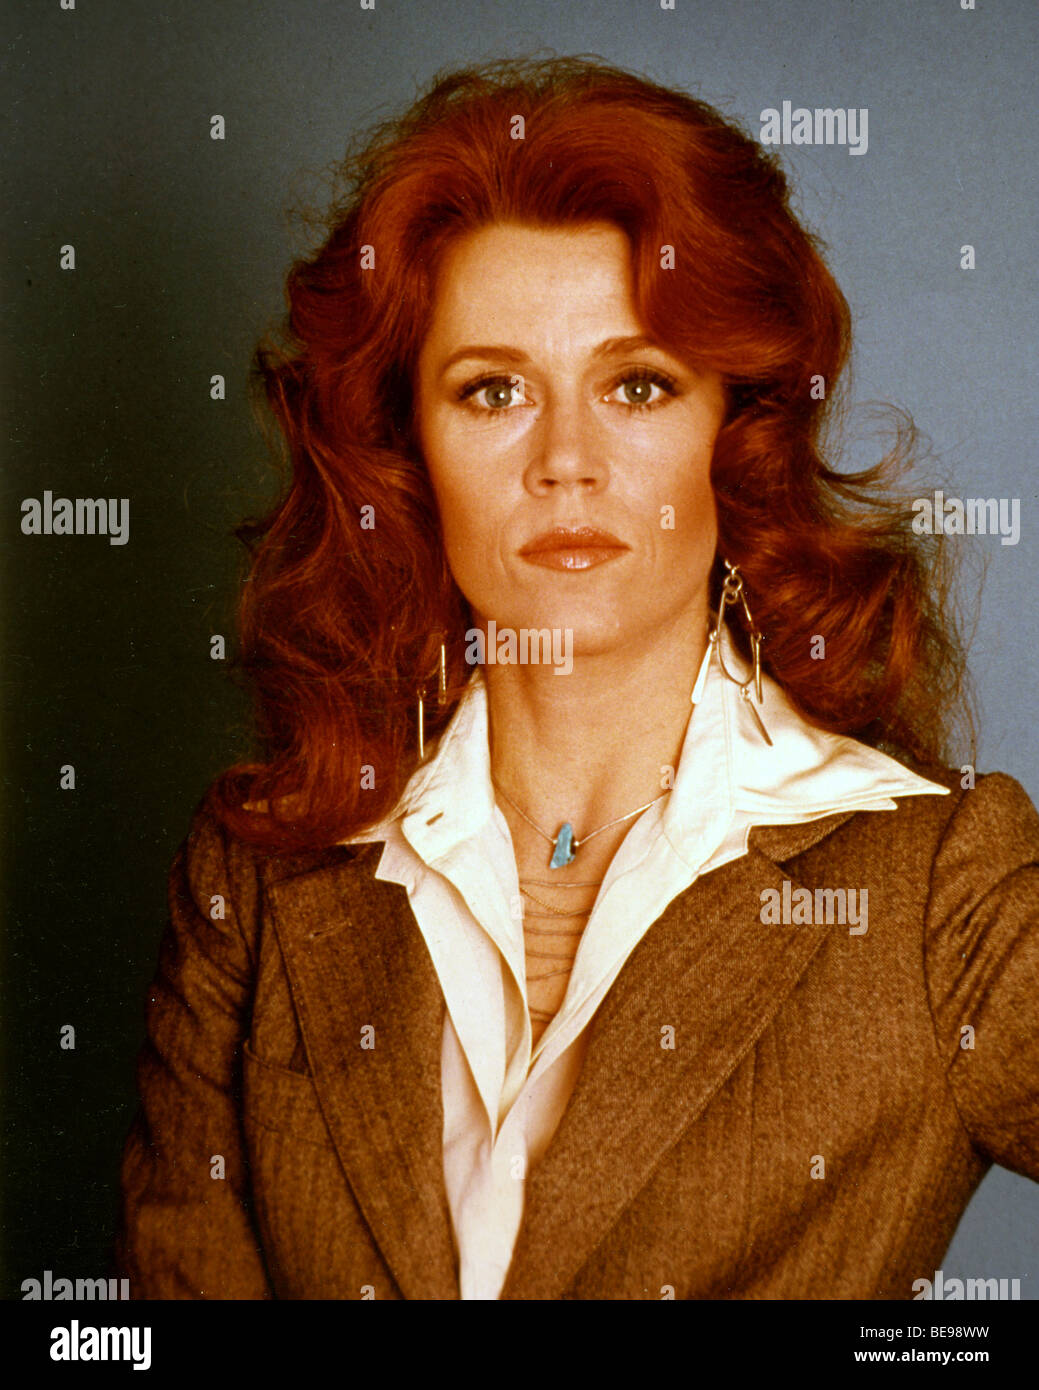 Jane Fonda Us Film Actress About 1979 Stock Photo